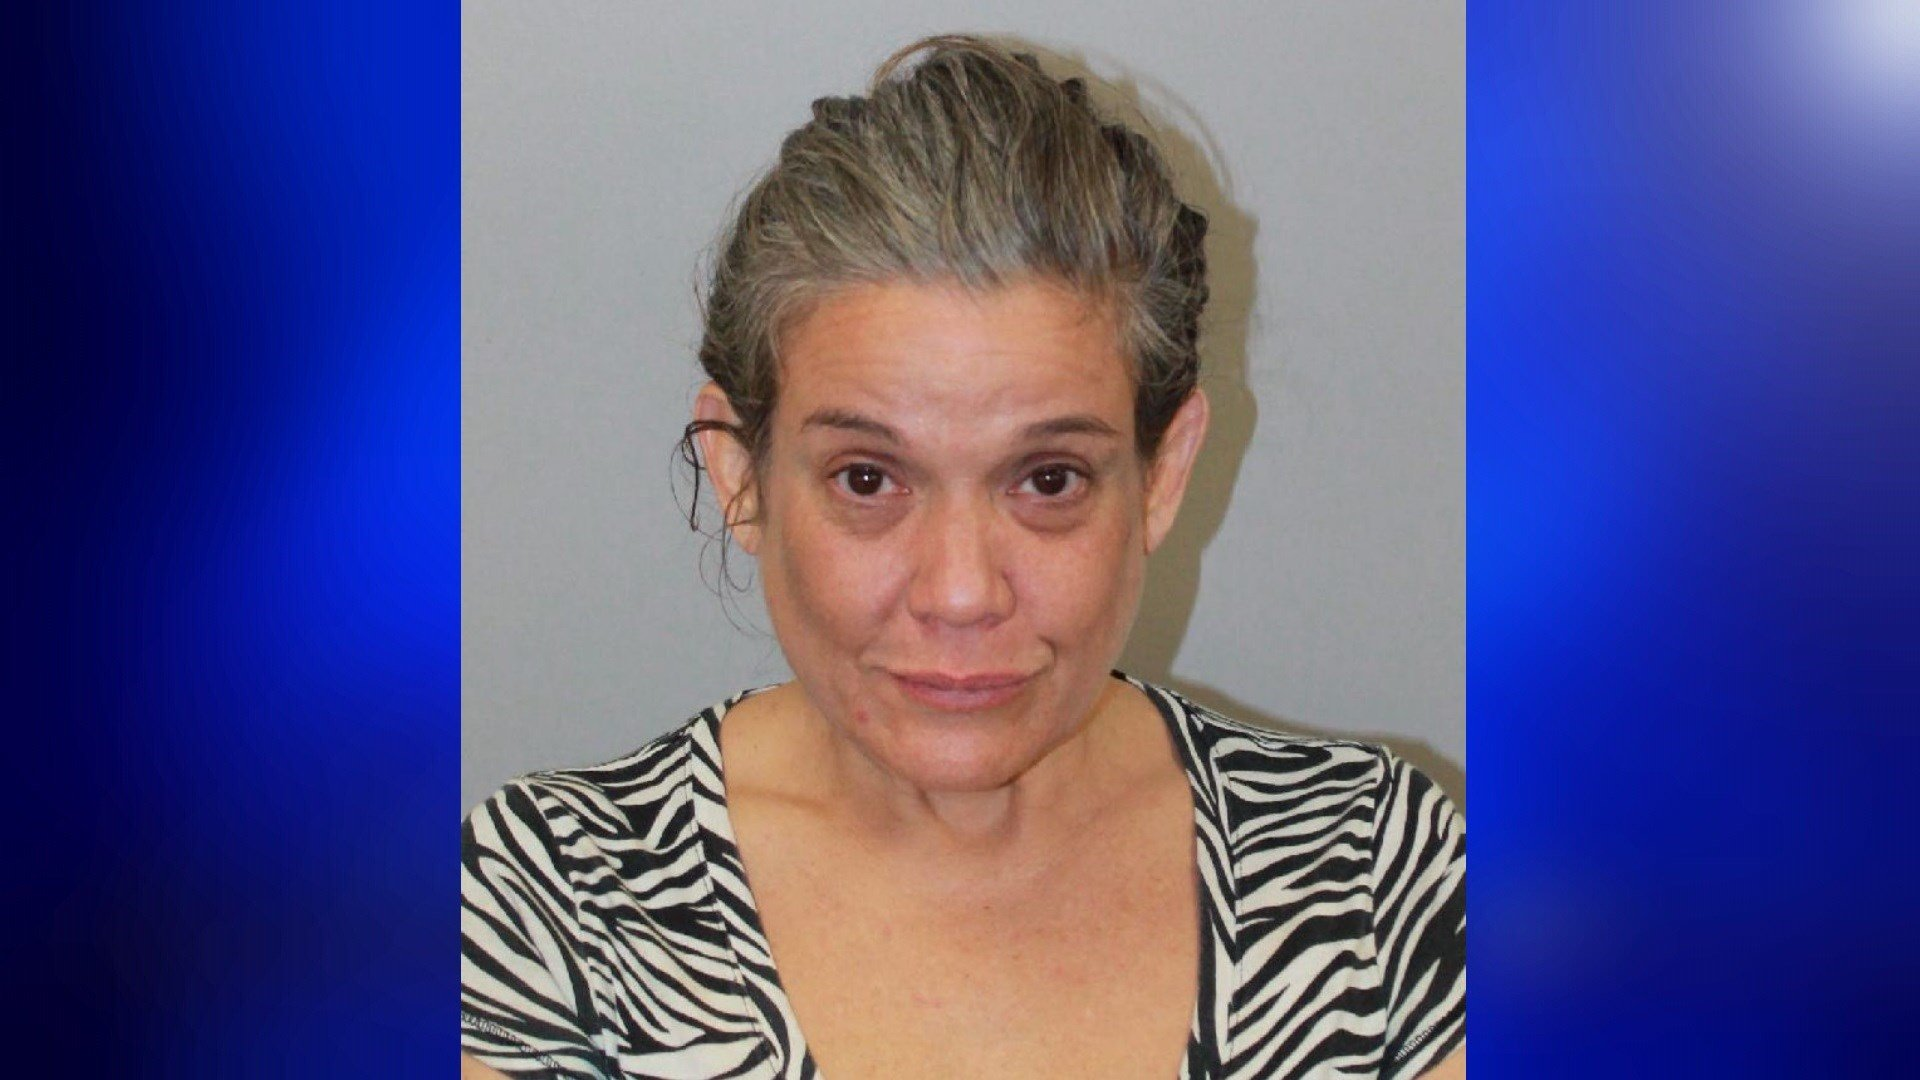 Belinda Johnson was arrested after allegedly driving drunk with children in the car.